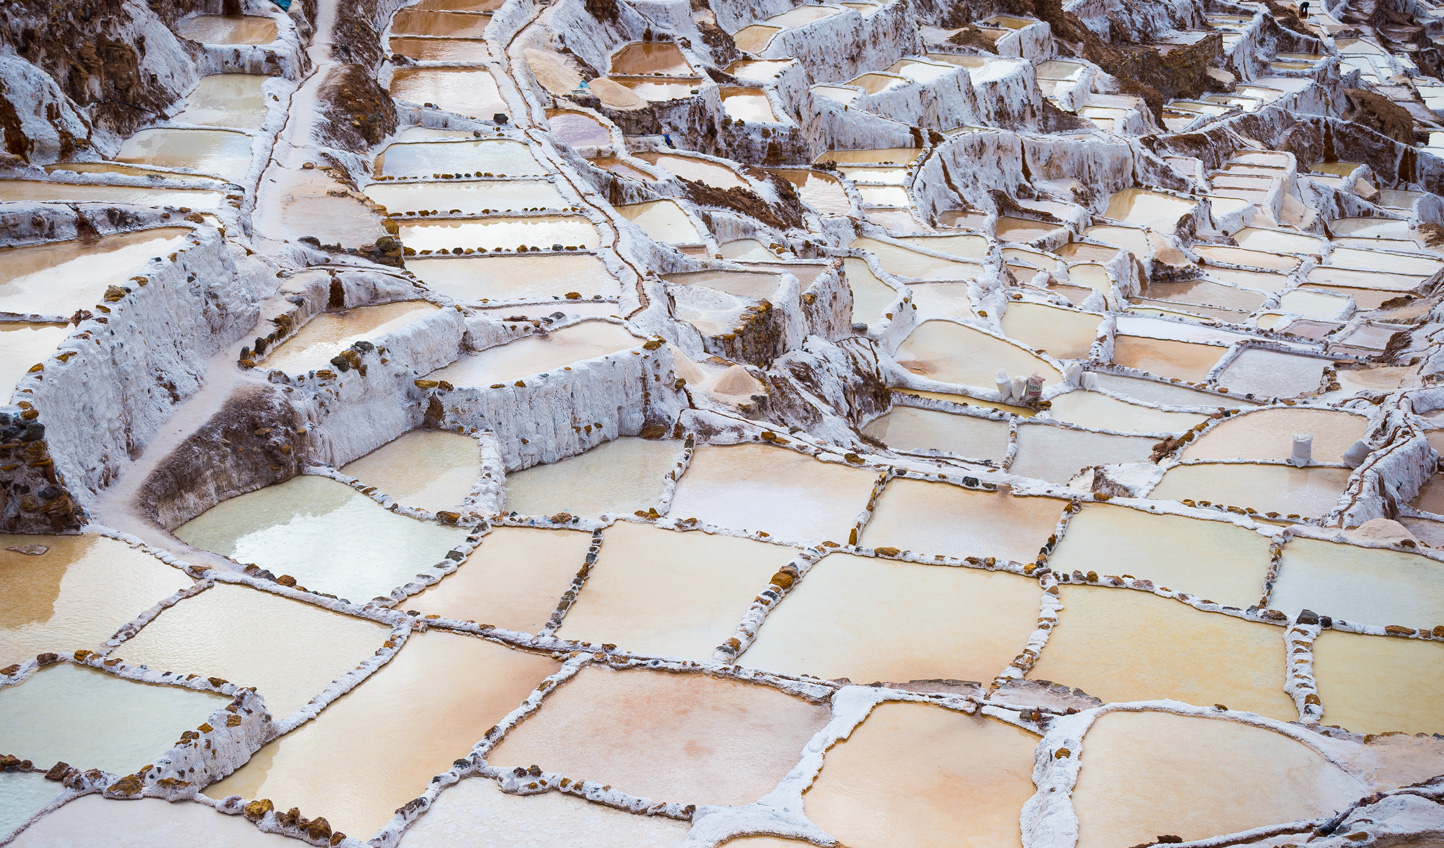 Stop by Maras and marvel at the luminescent hues of the salt mines